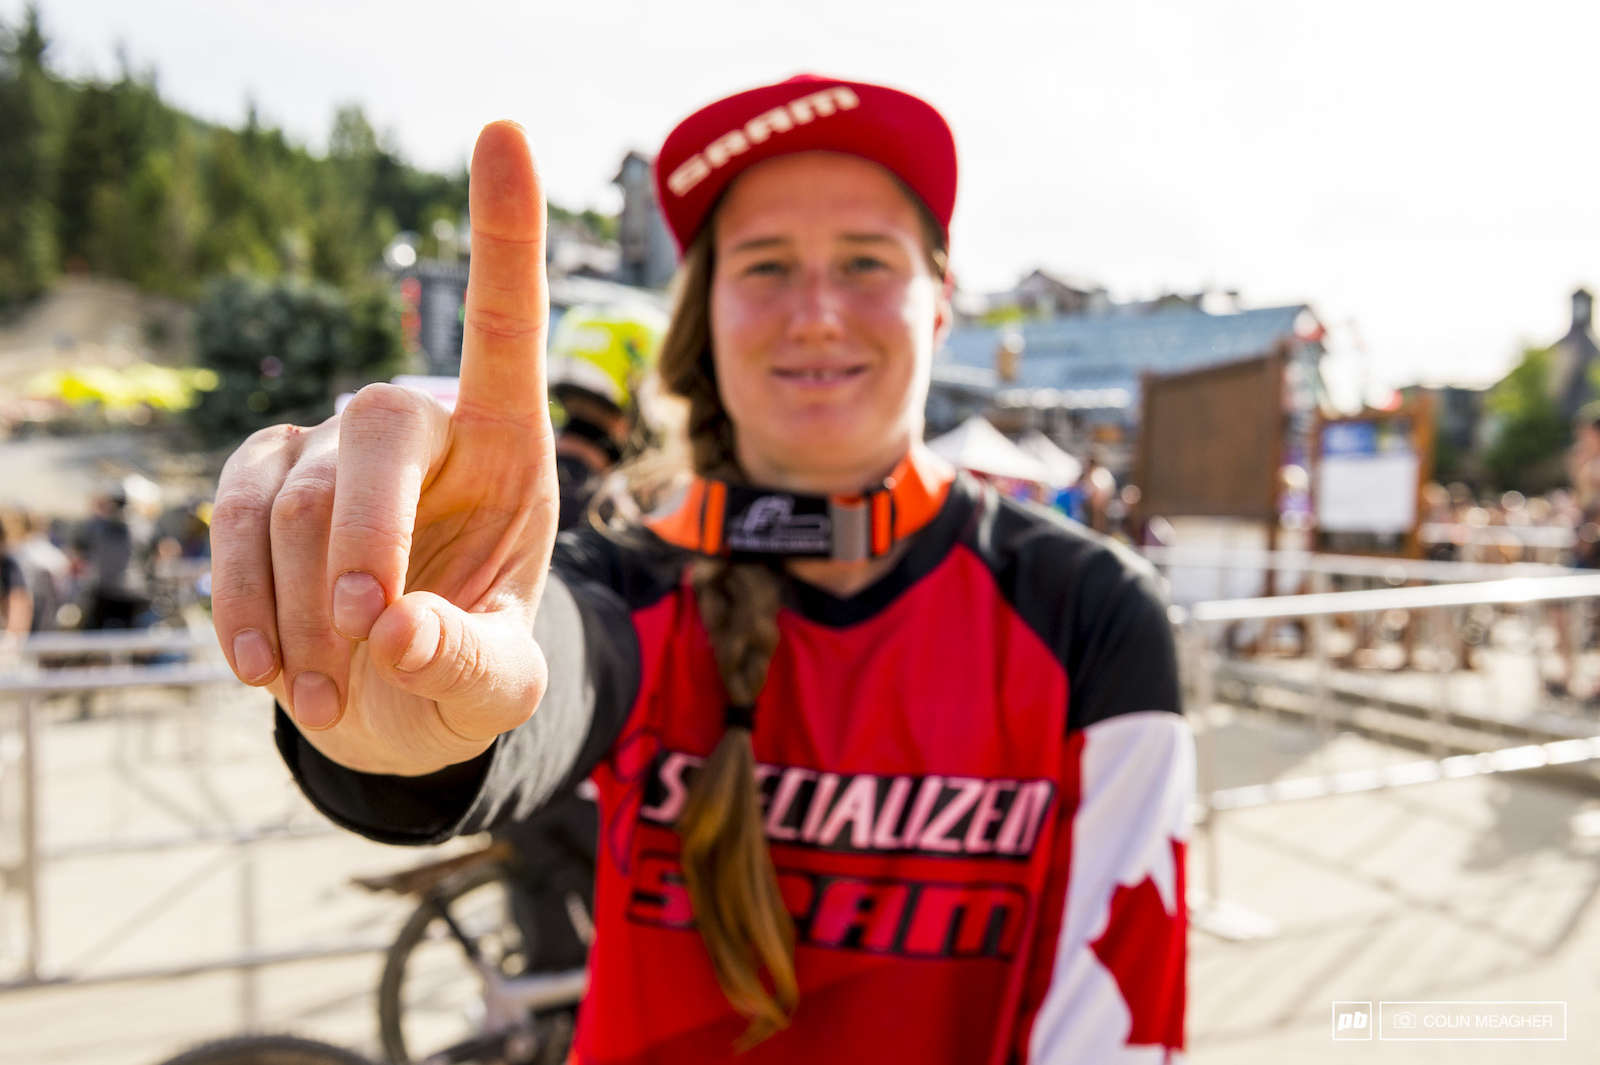 Fully recovered from two broken arms a year ago Miranda Miller has consistently worked her way up to being a consistent podium threat. That confidence carried Miller through today for the win in the Garbo DH.